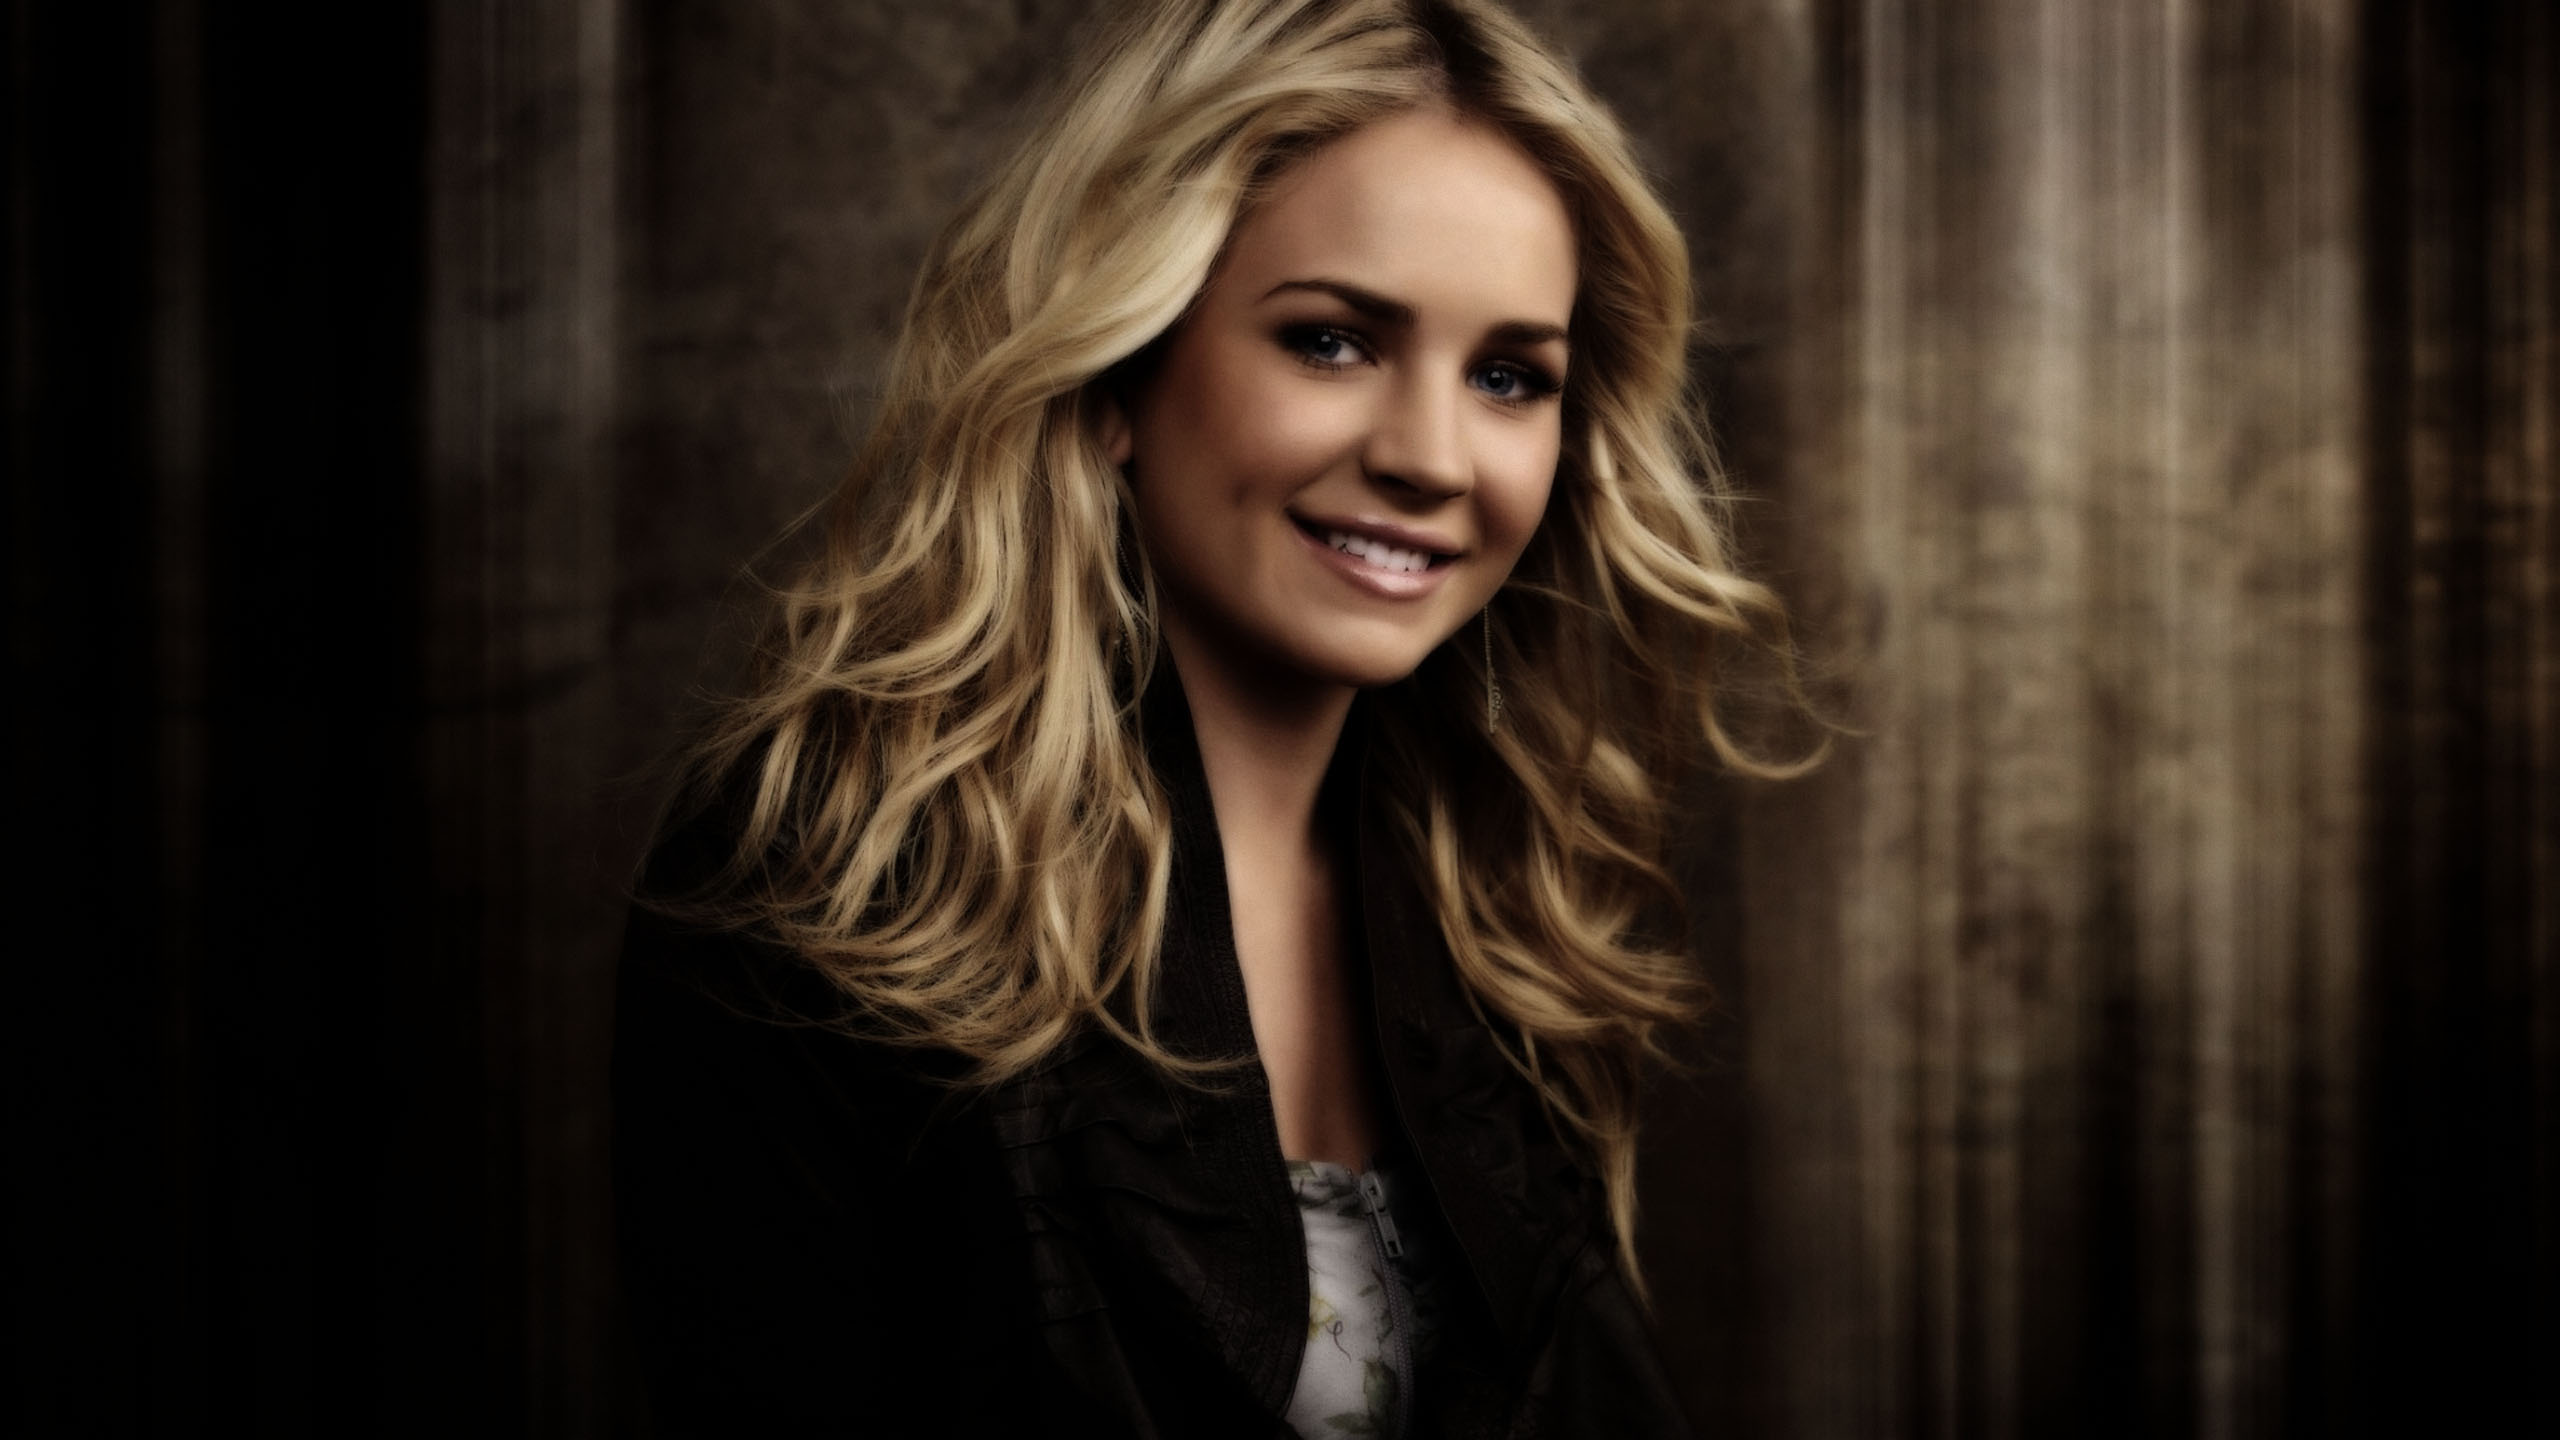 2560x1440 - Brittany Robertson Wallpapers 10